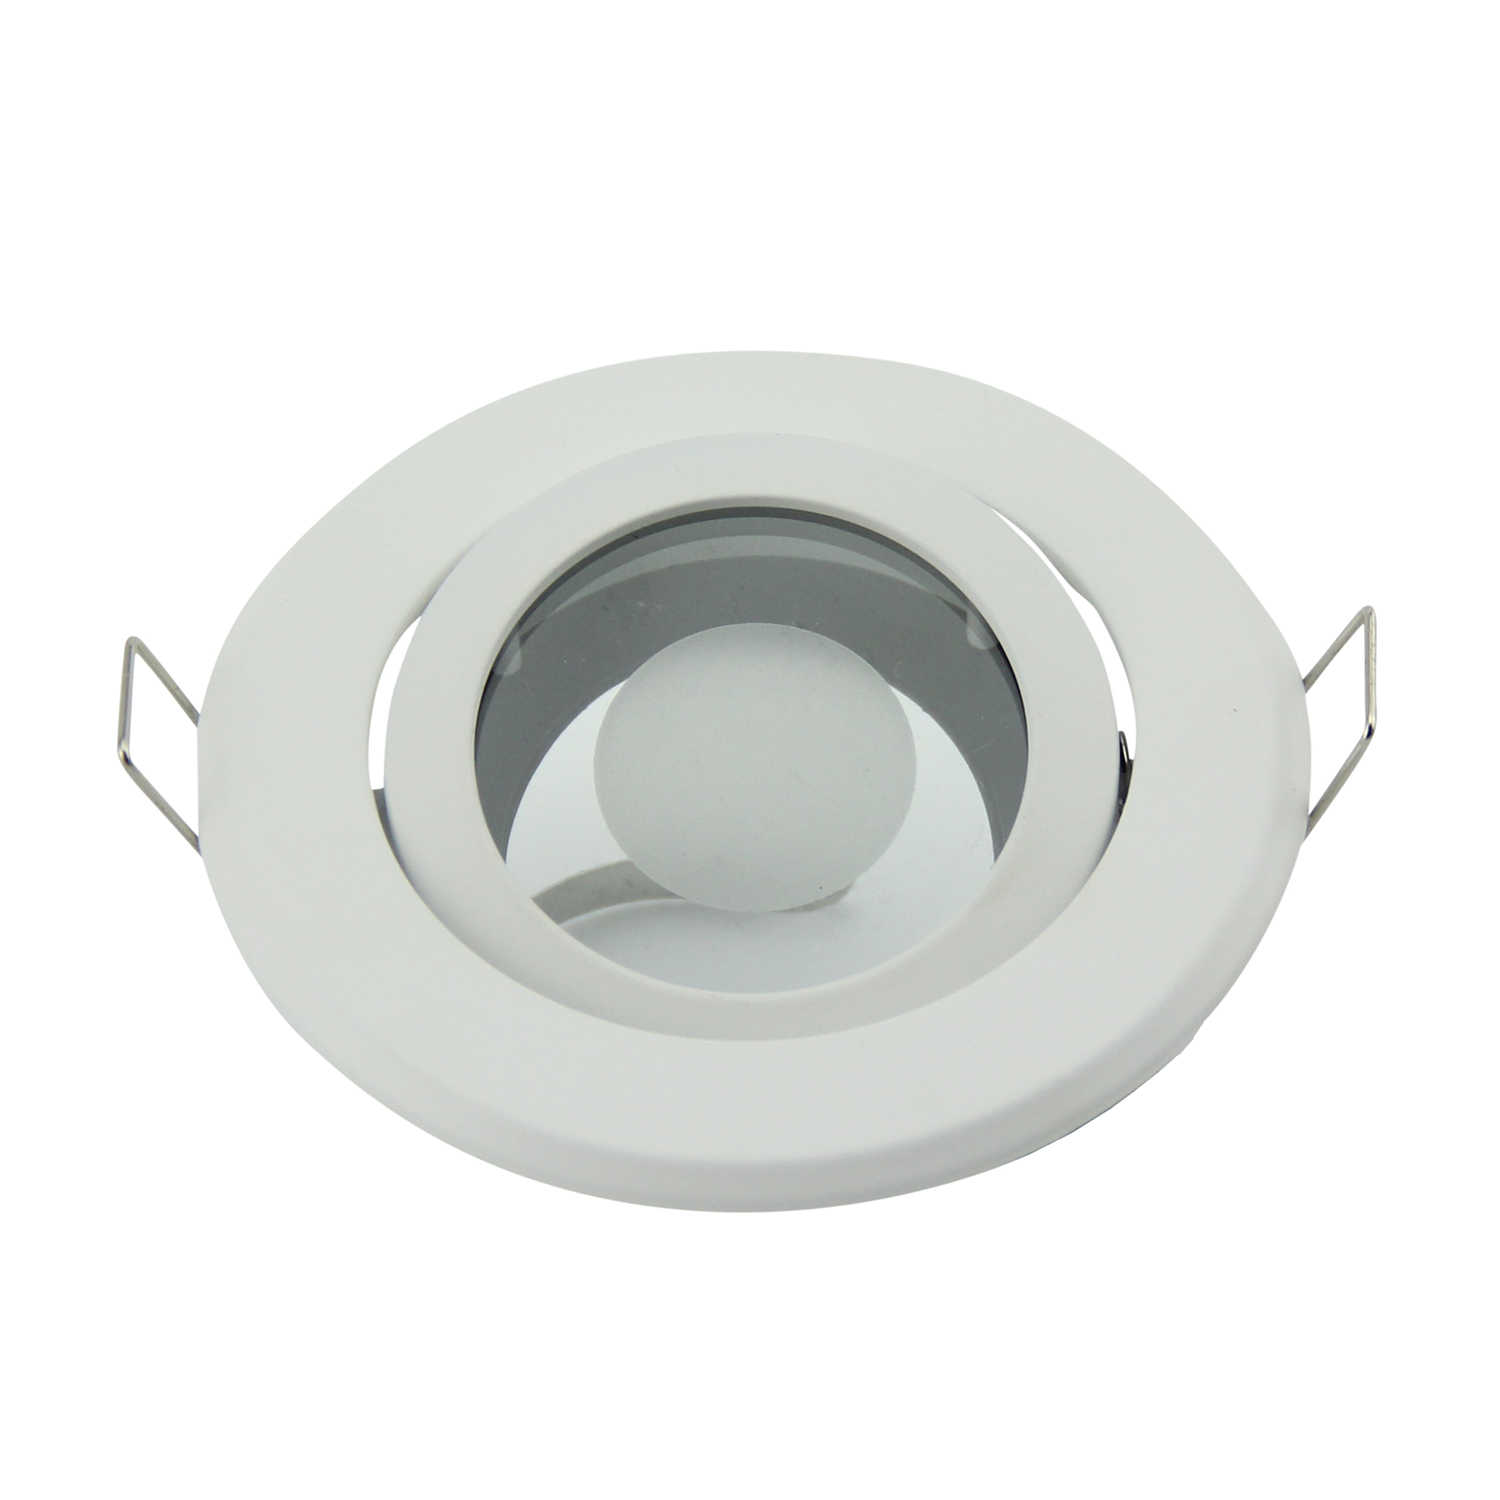 Pack x 6 recessed led downlights mr16 light fitting gu10 mr16 socket zinc alloy circle satin fitting frame